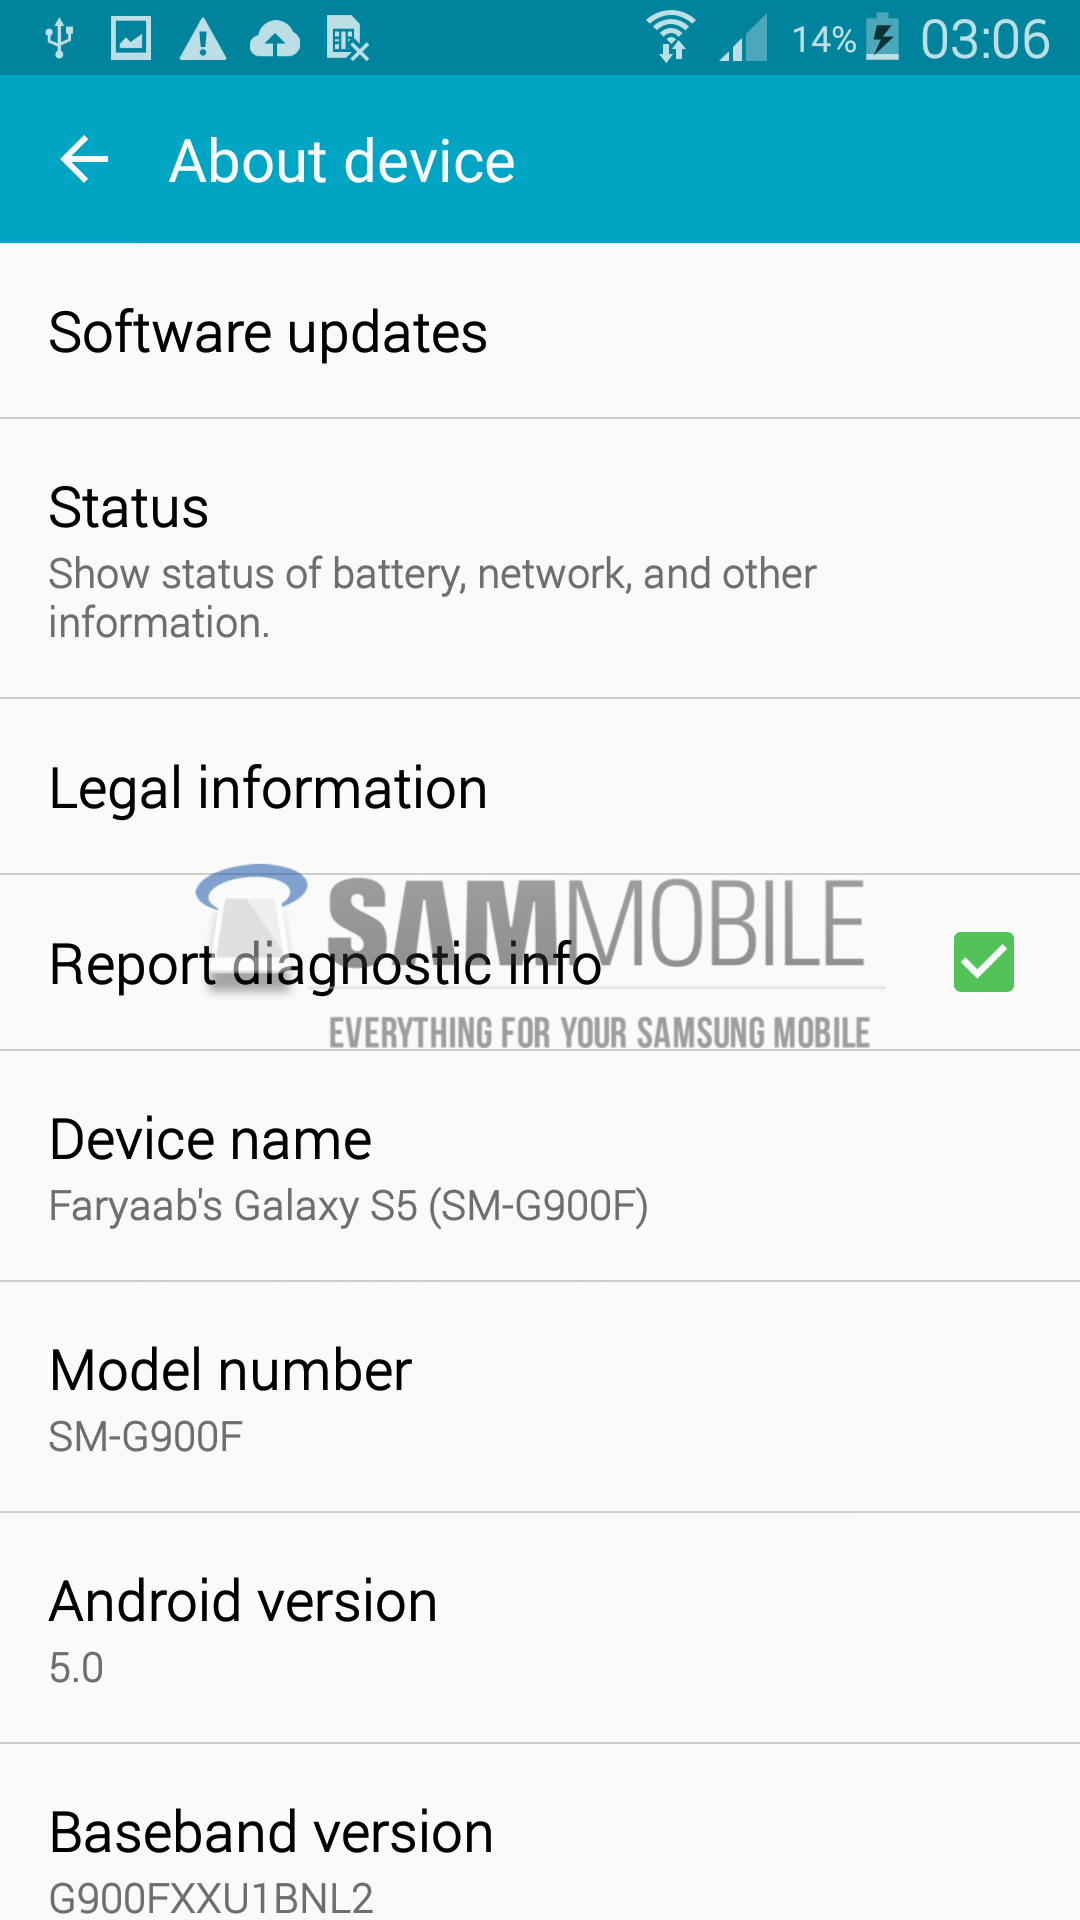 Update Galaxy S5 Exynos (SM-G900H) with Android 5.0 Lollipop G900HXXU1BOA7 official firmware